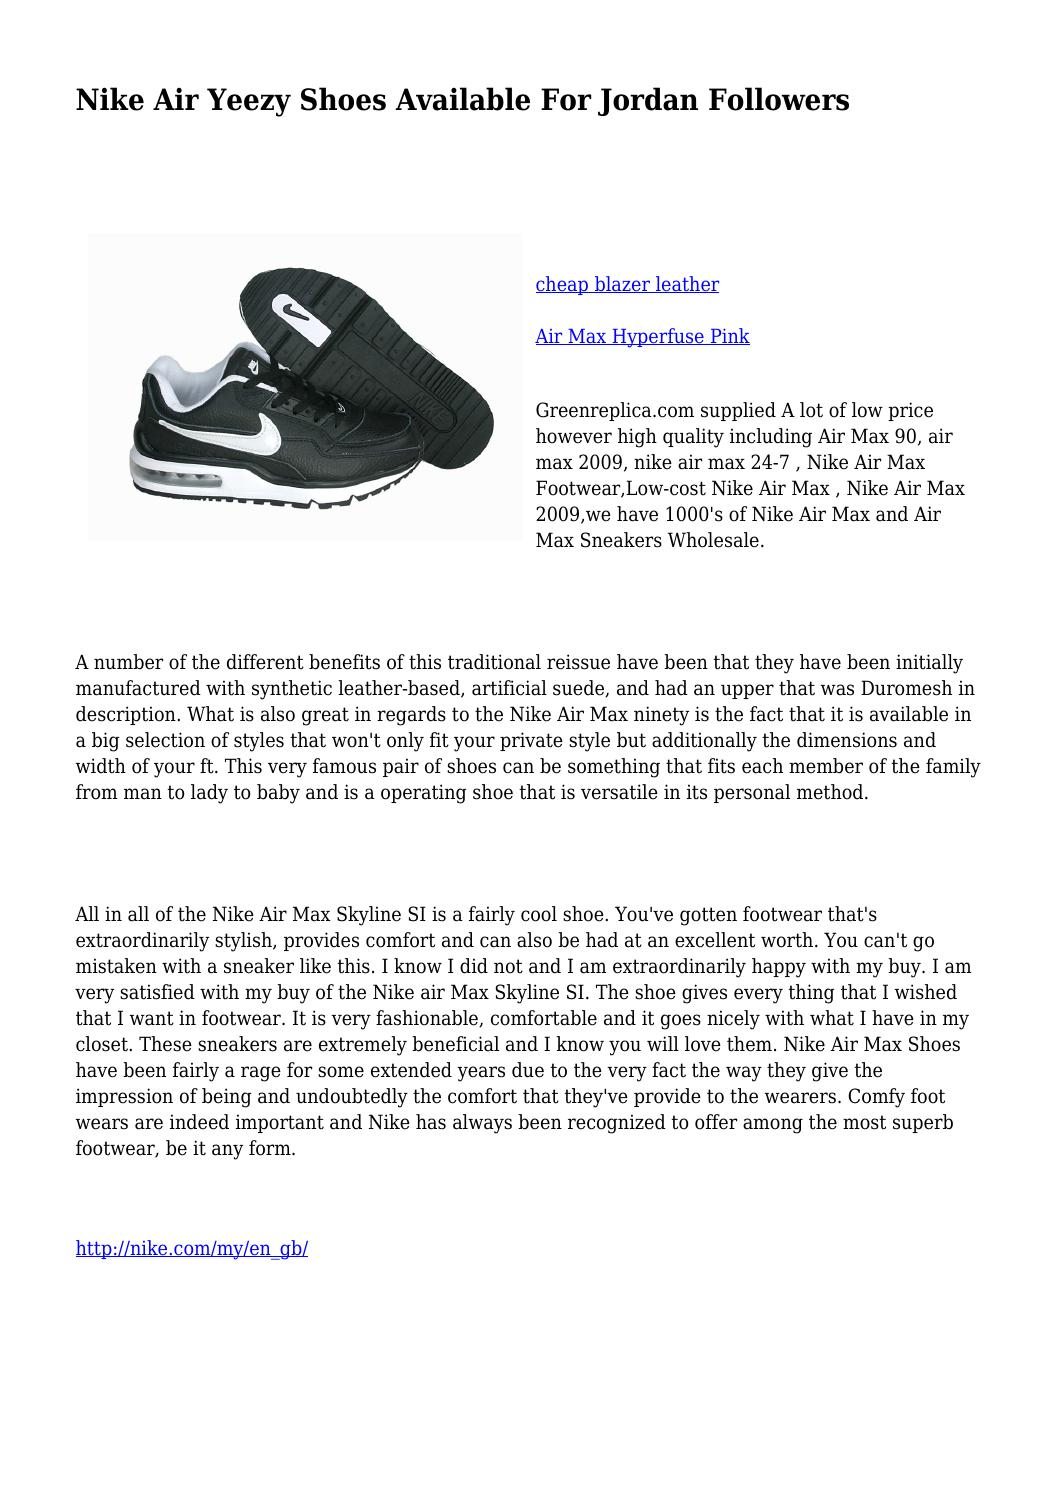 7848b7d90204 Nike Air Yeezy Shoes Available For Jordan Followers by heartbreakingsc42 -  issuu